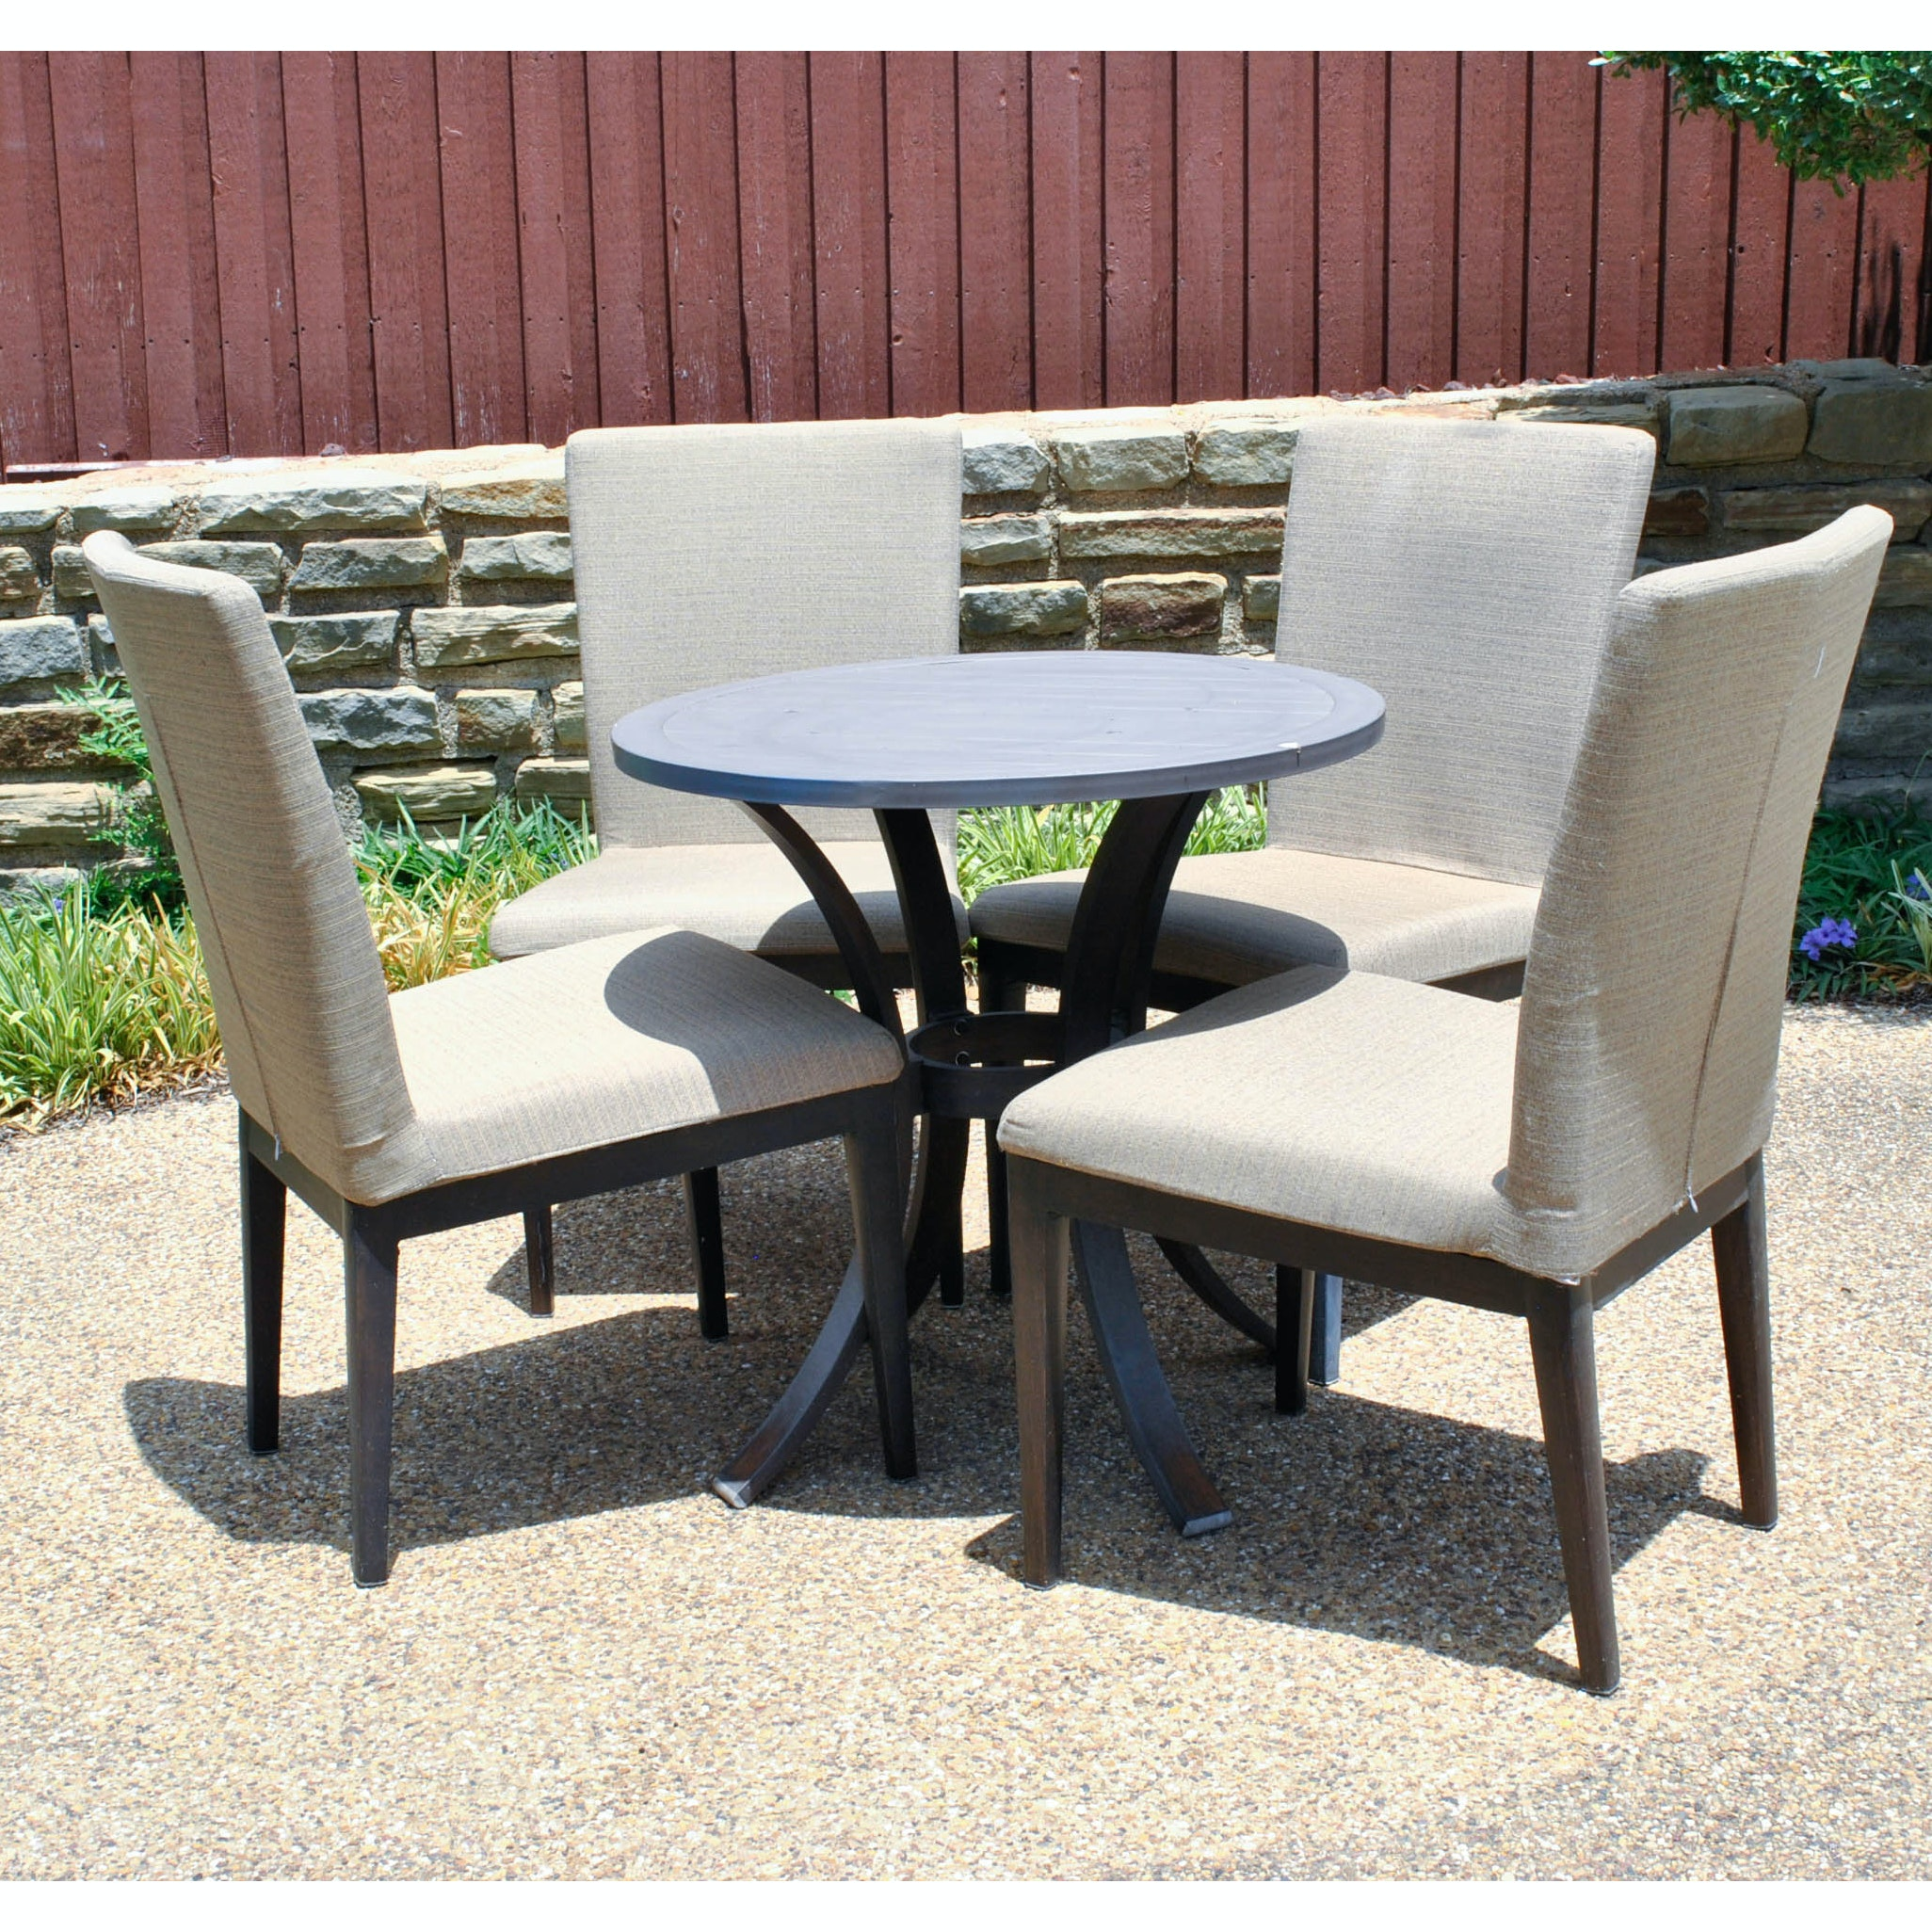 Upholstered Patio Side Chairs and Table